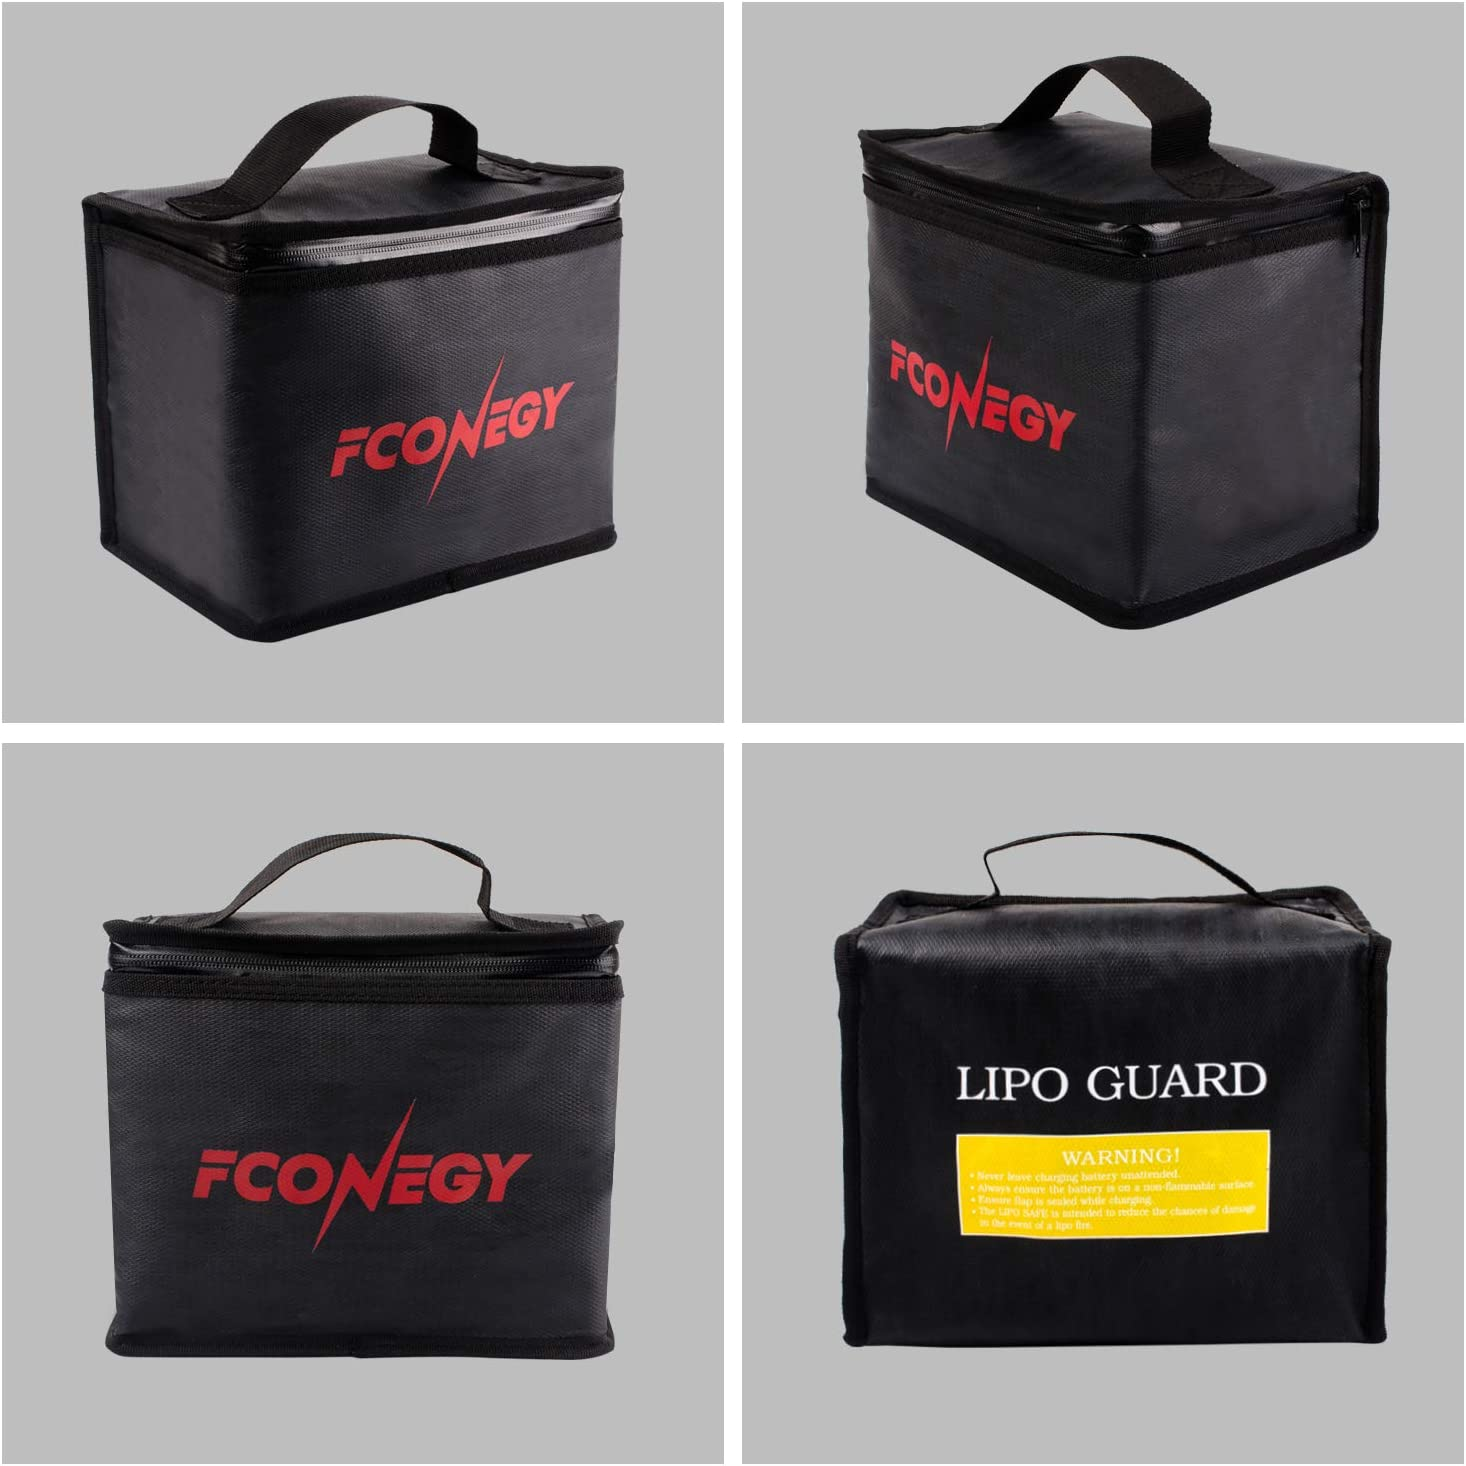 FCONEGY 2 Pack Lipo Battery Bags Two Sizes Fire and Water Resistant Safety Storage Pouch Safe Charging Transport Bag Fireproof Explosion Proof for Toy RC Drone Vehicle,Black